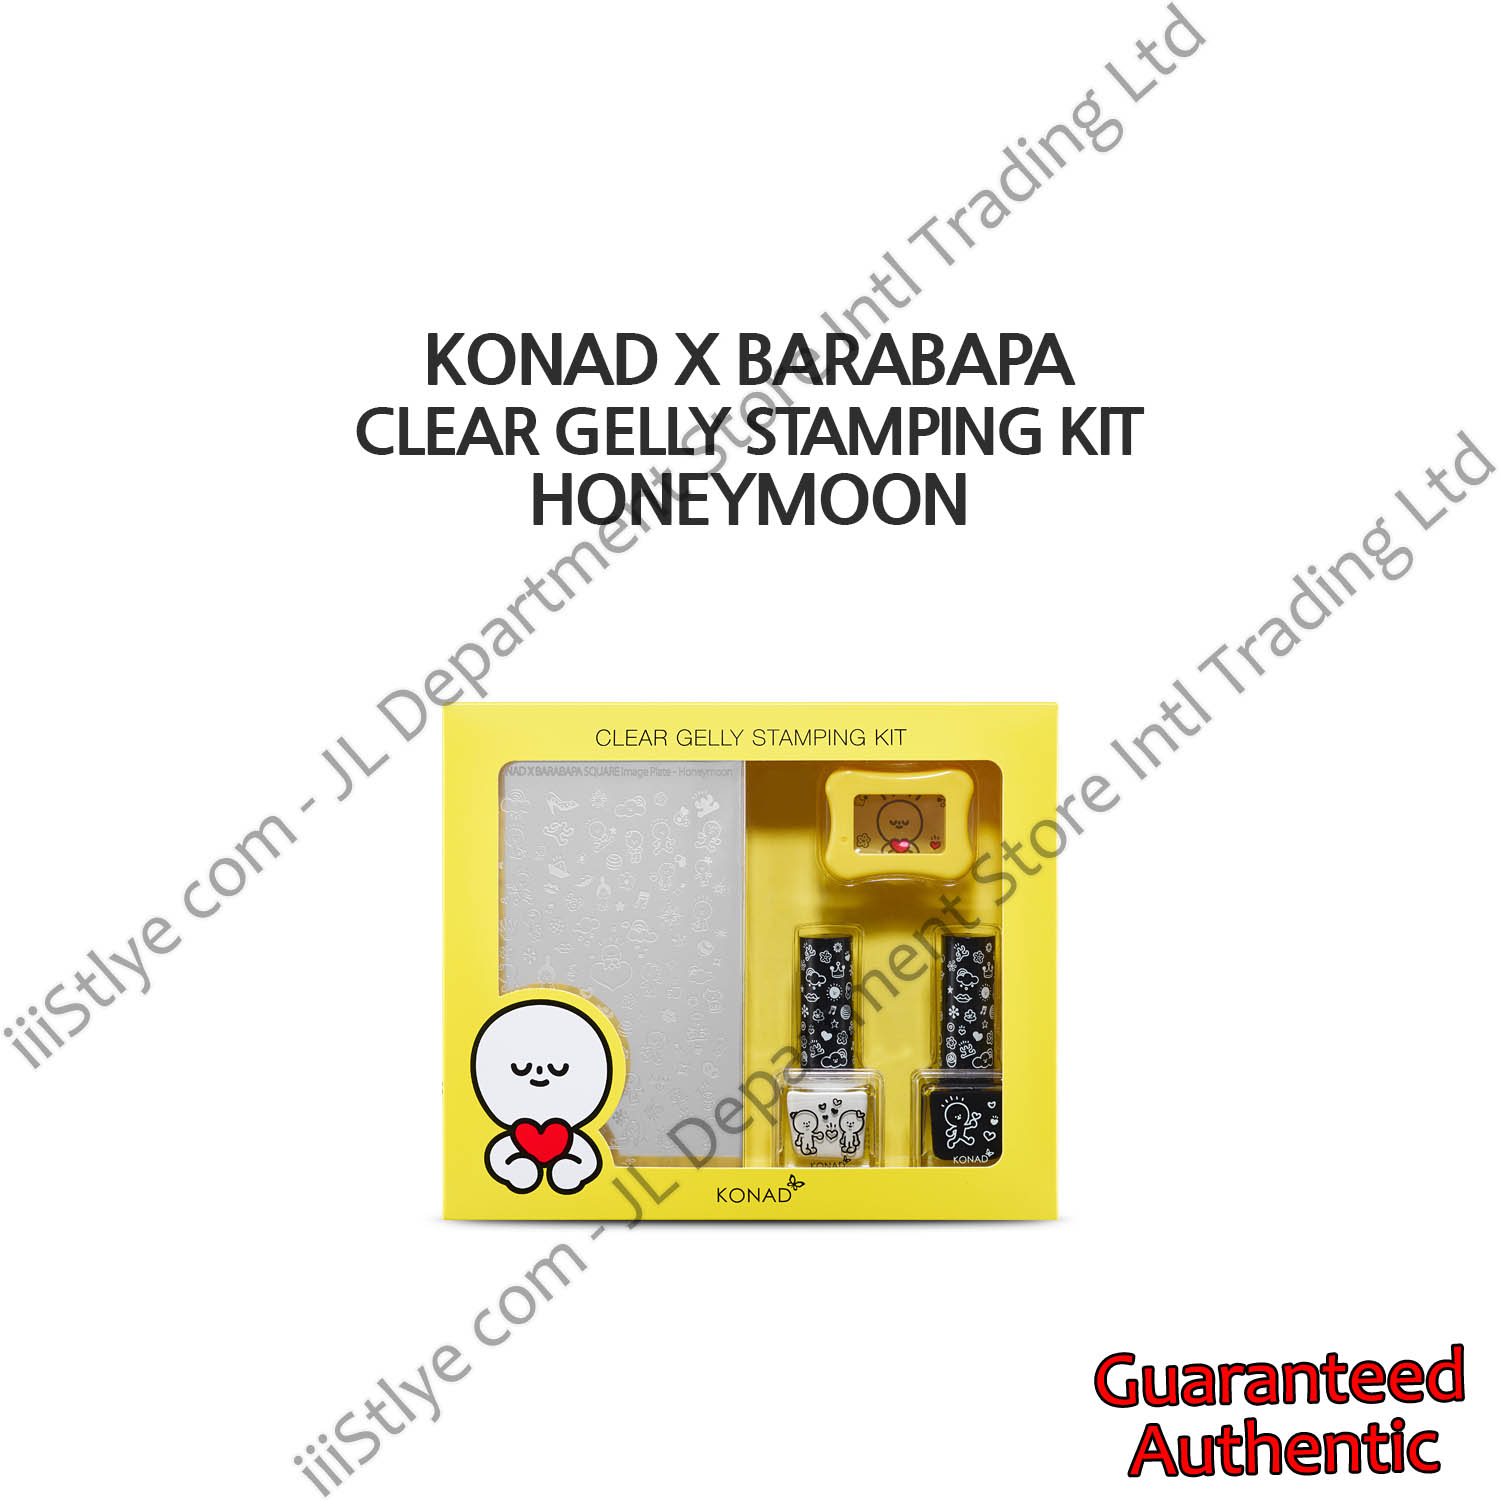 konadXbarabapa clear gelly stamping kit honeymoon